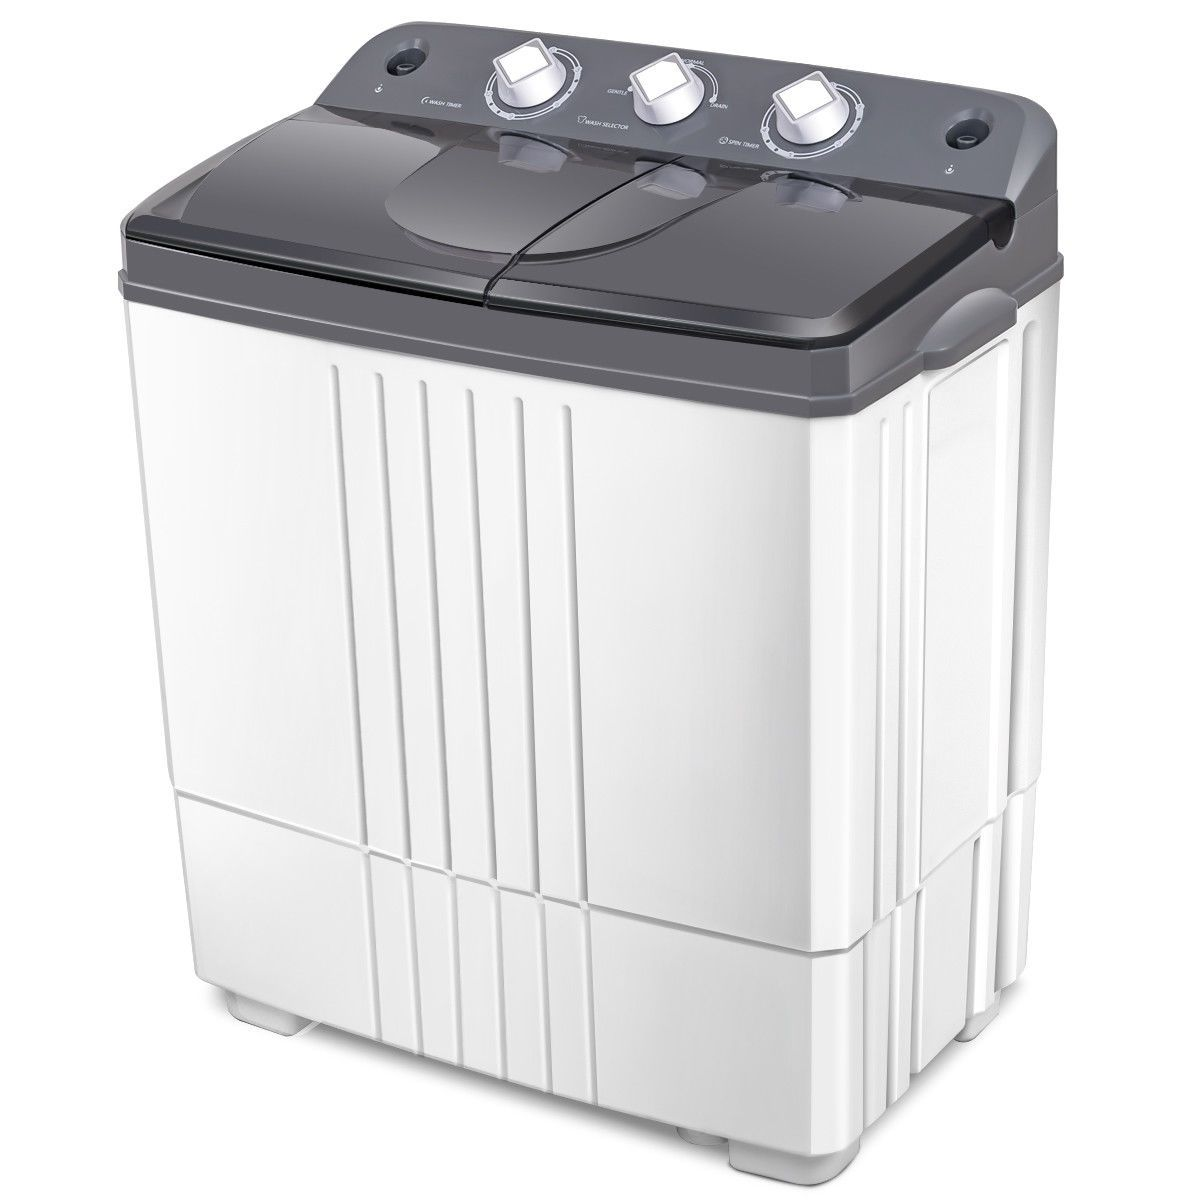 300W, Blue Magic Folding Washing Machine Quick Gear Washing Machine Portable Foldable Collapsible Countertop Automatic Personal Turbine Washer for Camping Travelling Apartments Dorms RV